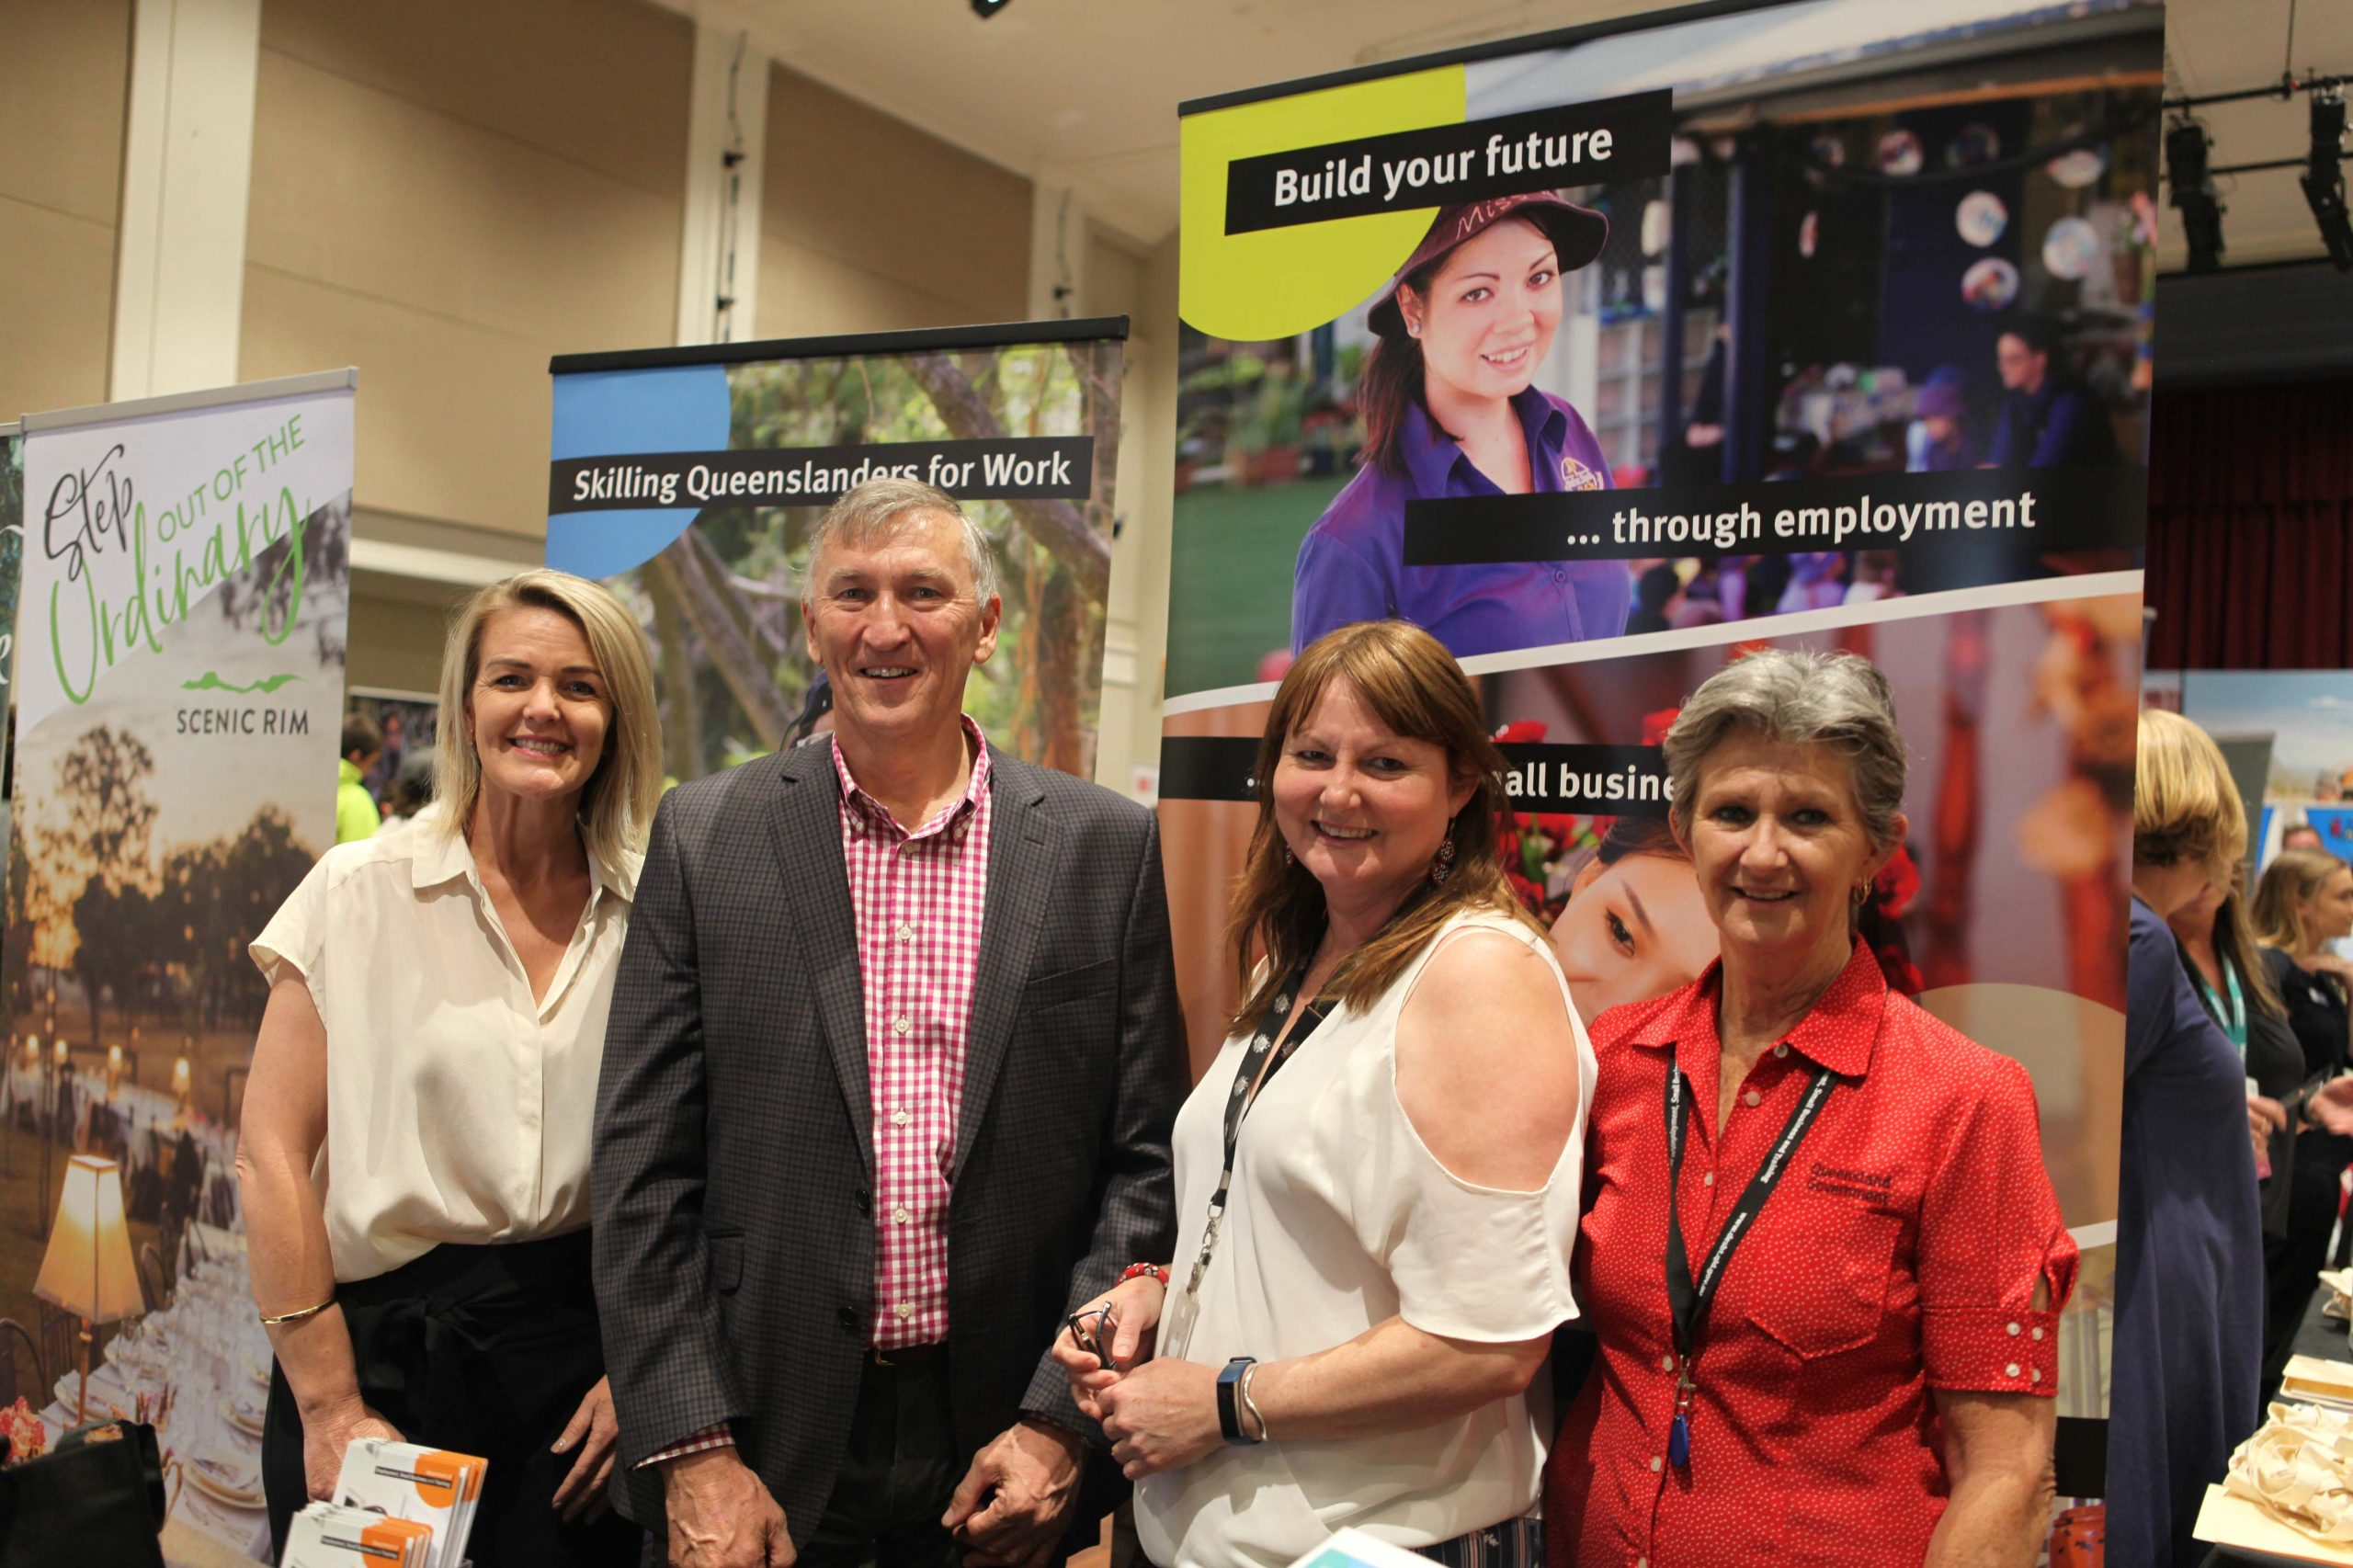 Deanne McInally of Department of Employment, Small Business and Training (DESBT), Mayor Greg Christensen, Sandee Harris of Australian Department of Employment and Kym Hudson of DESBT.